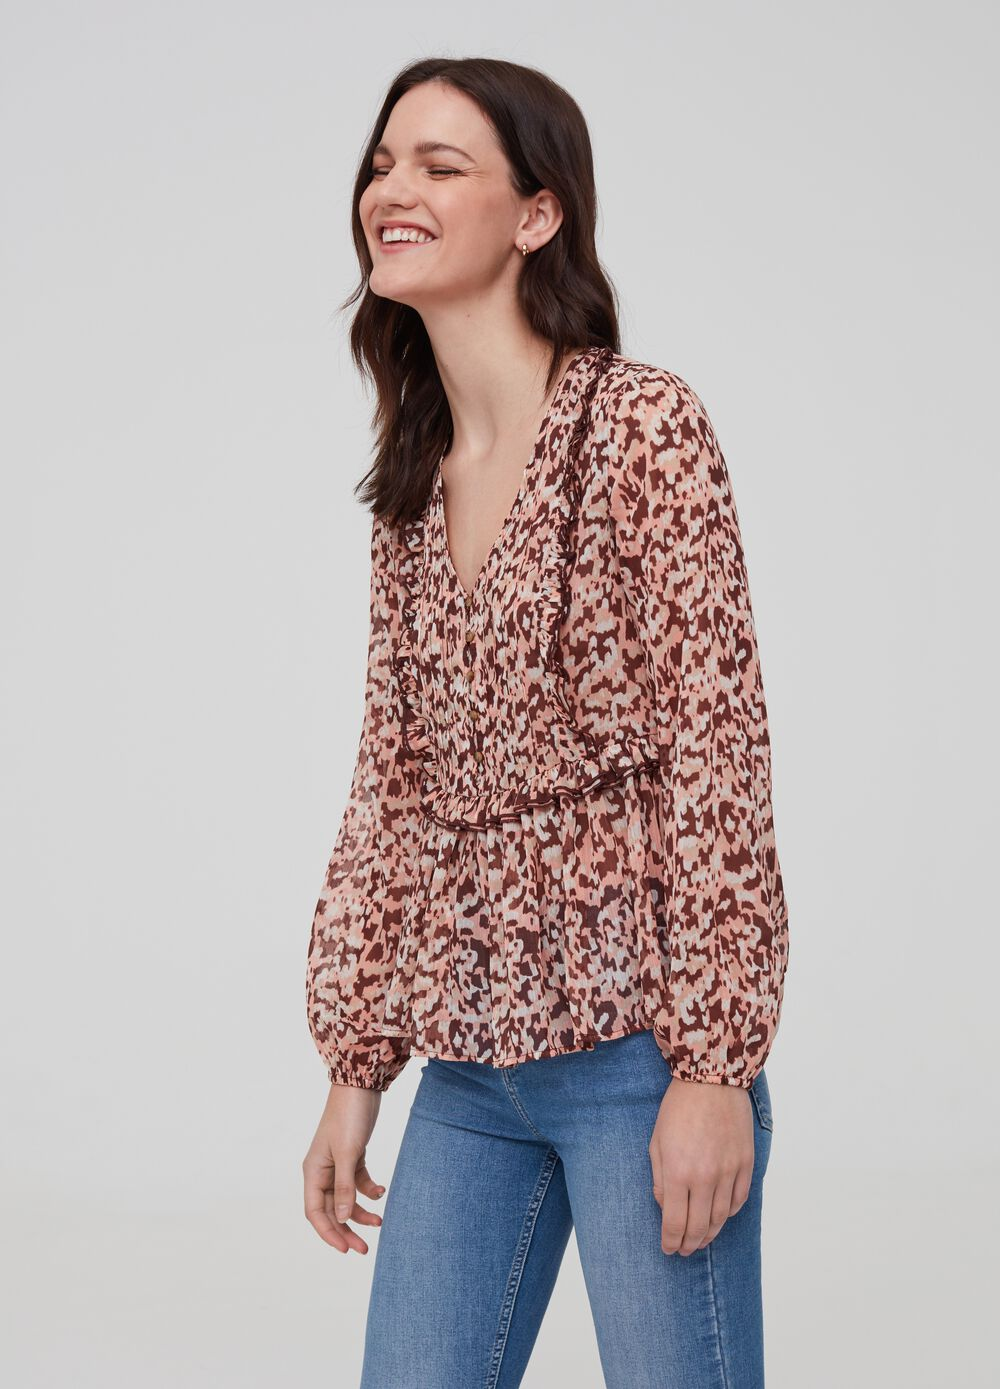 Blouse with V-neck and animal print